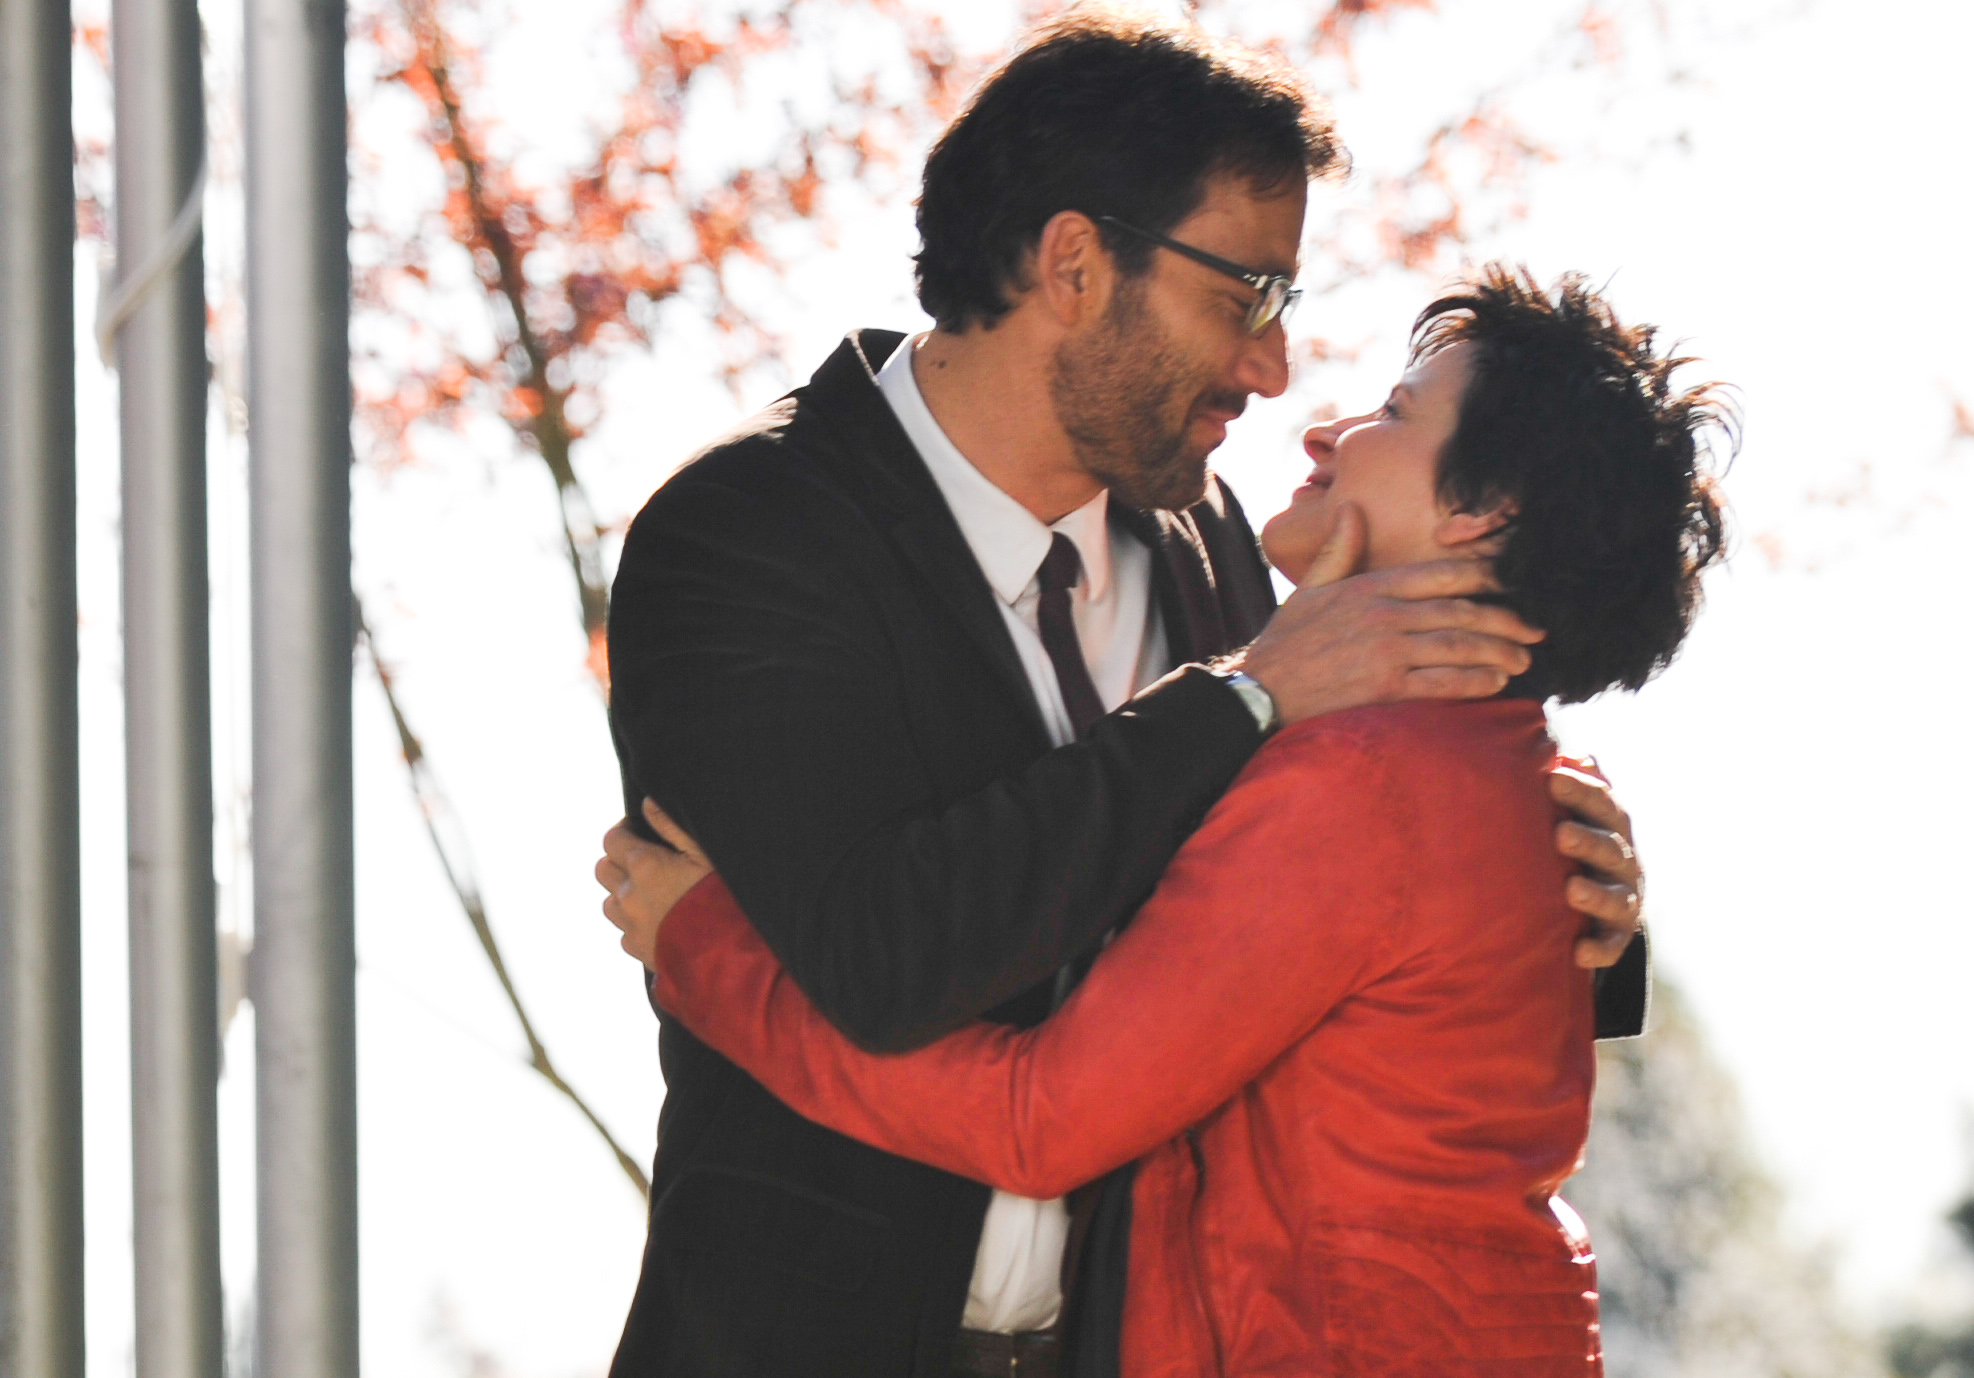 WORDS AND PICTURES Image Featuring Clive Owen and Juliette Binoche